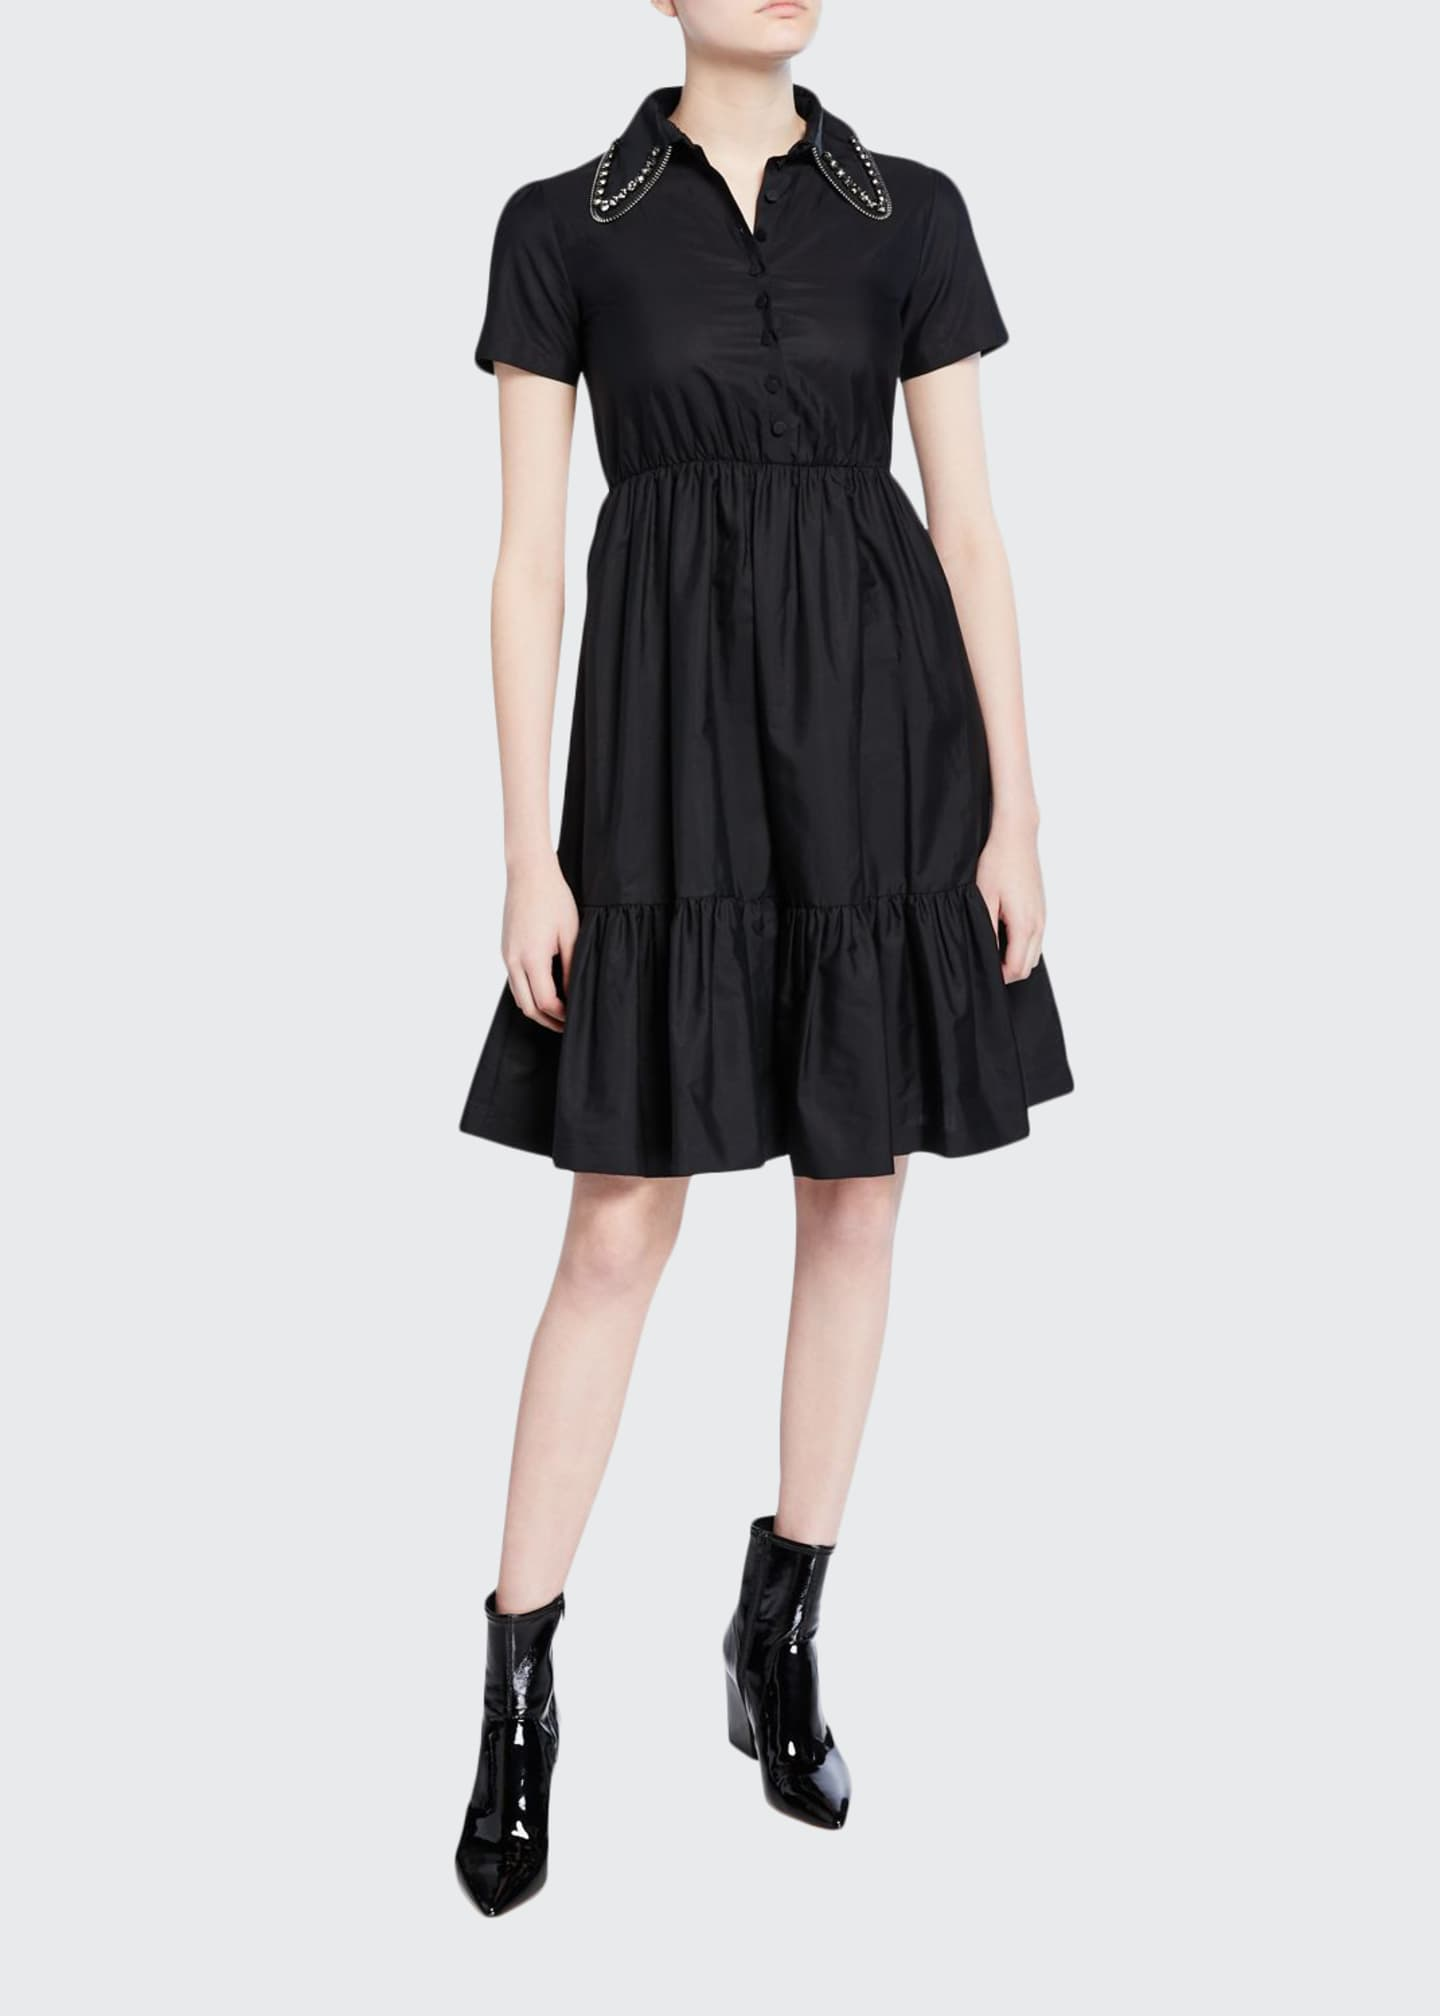 No. 21 Collared Short-Sleeve Dress with Crystals